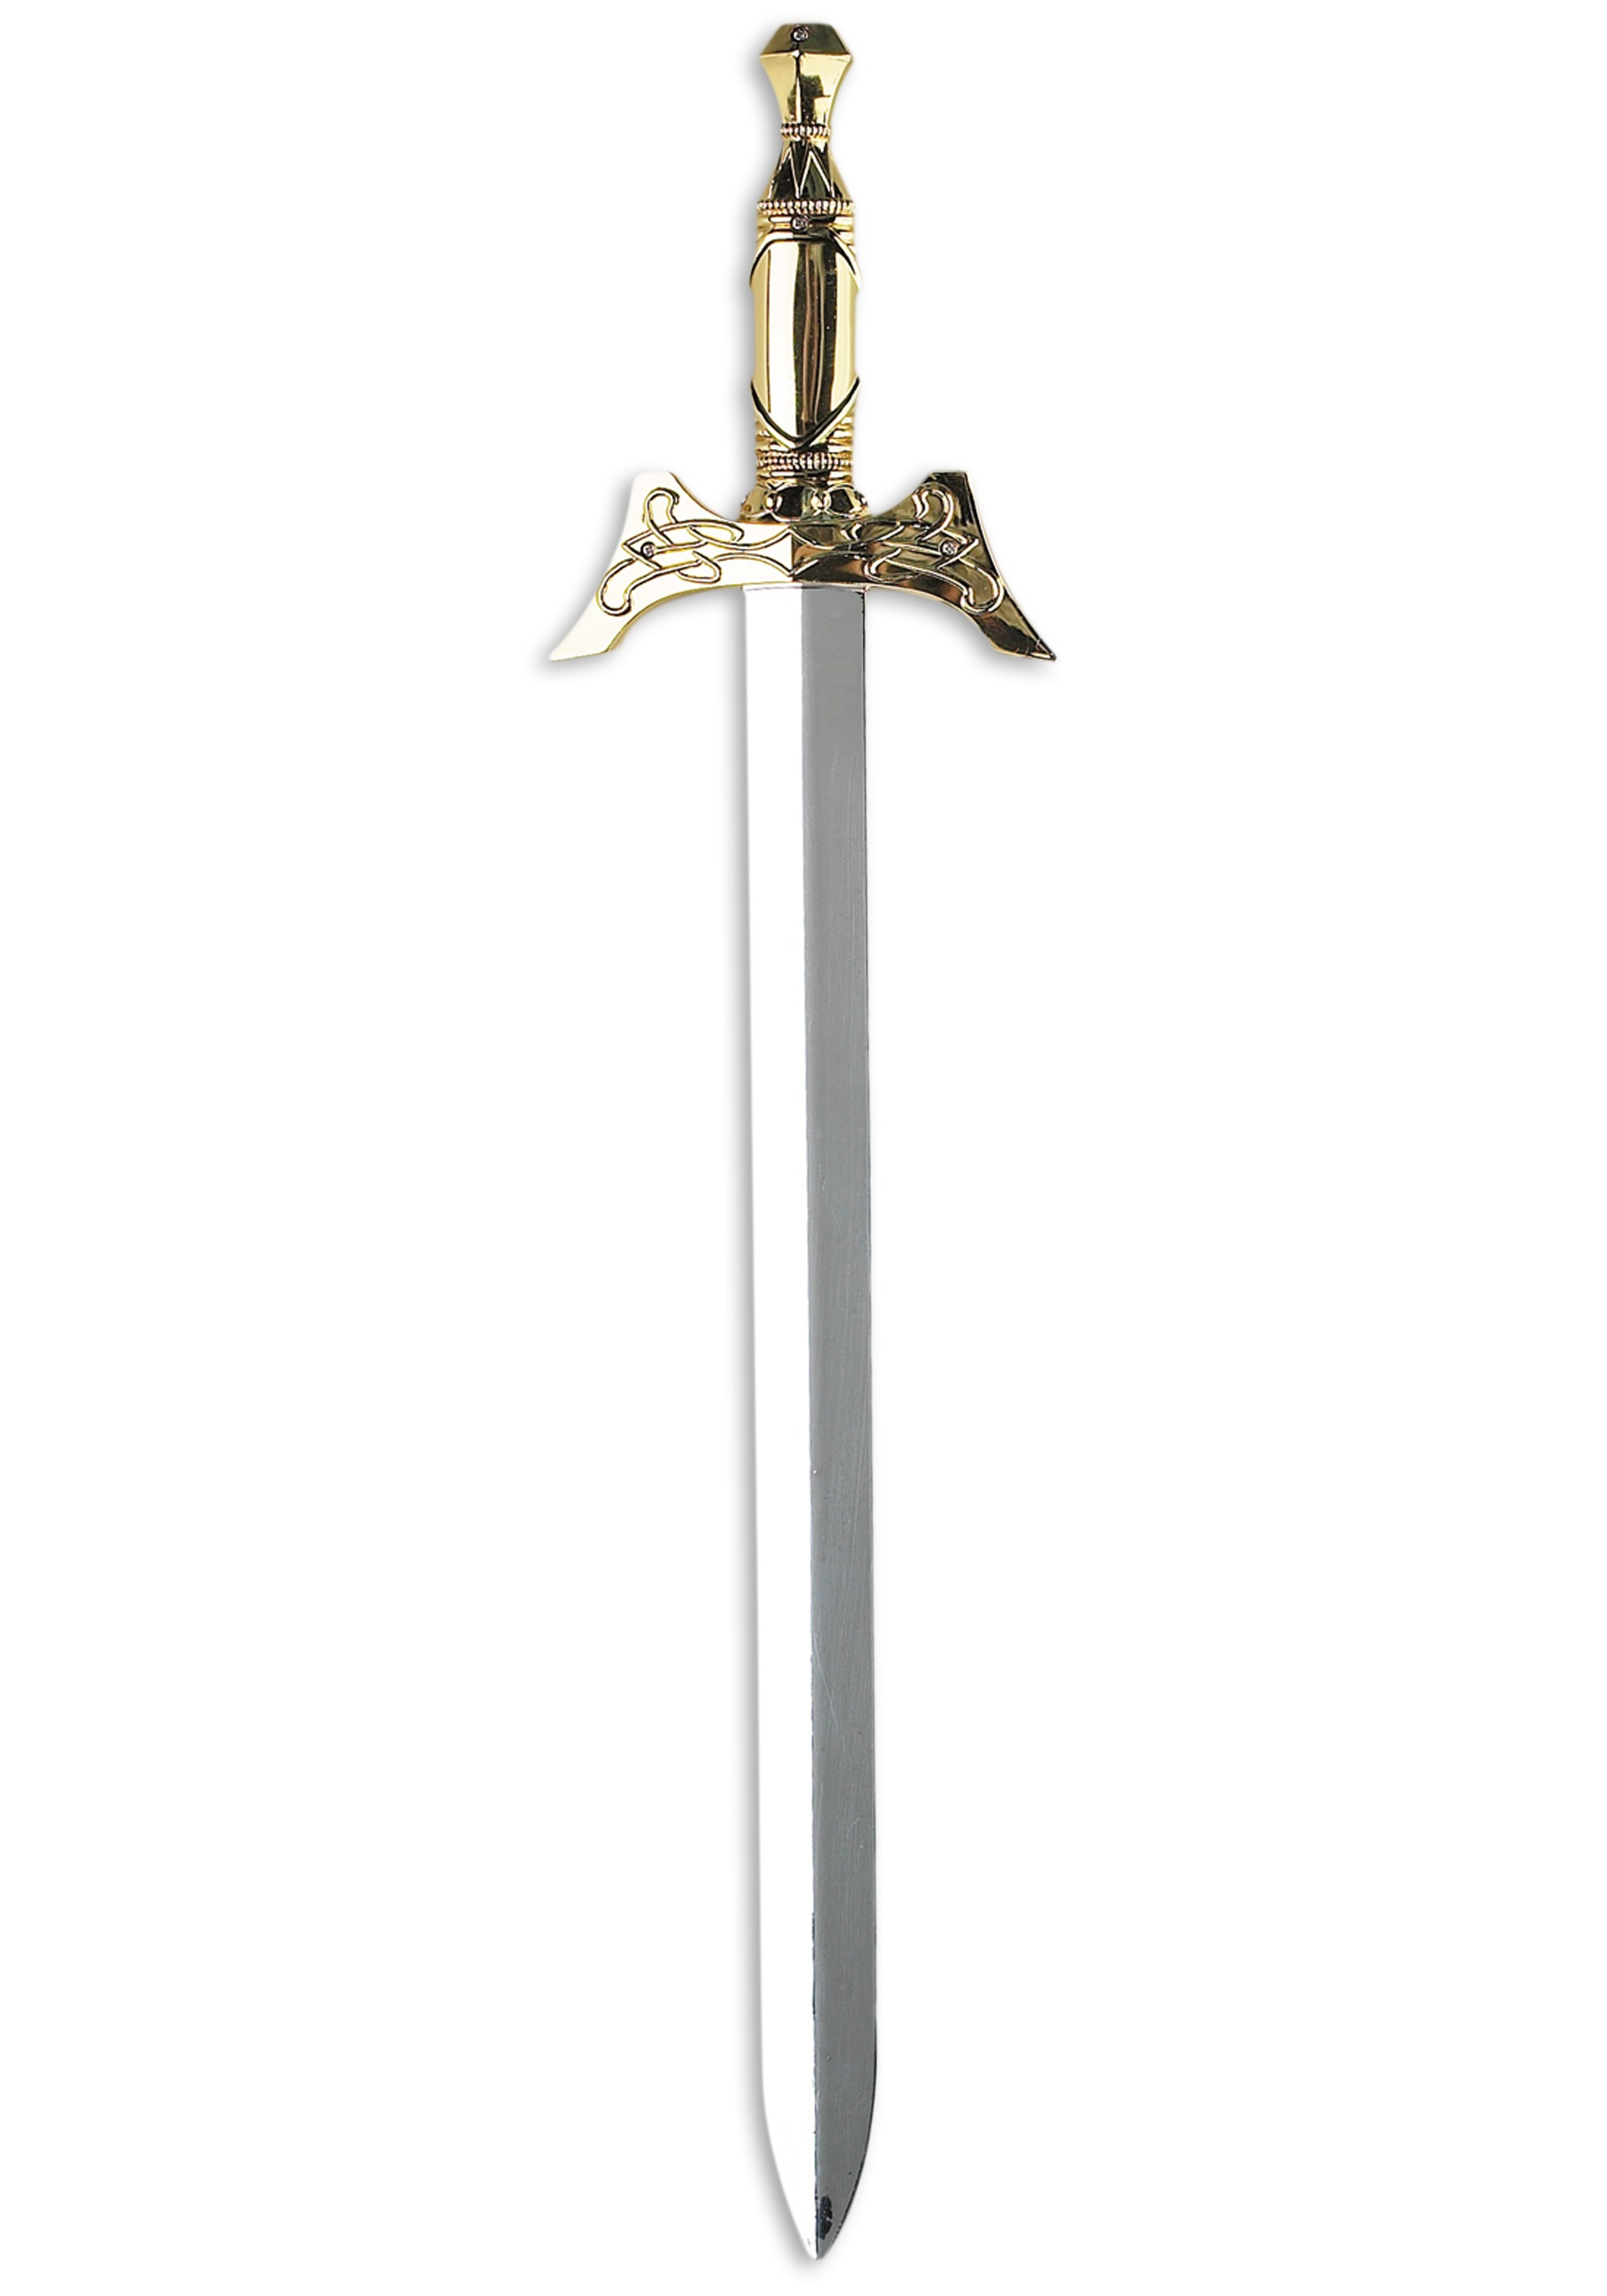 Toy Swords And Guns : Toy sword costume weapons and accessories